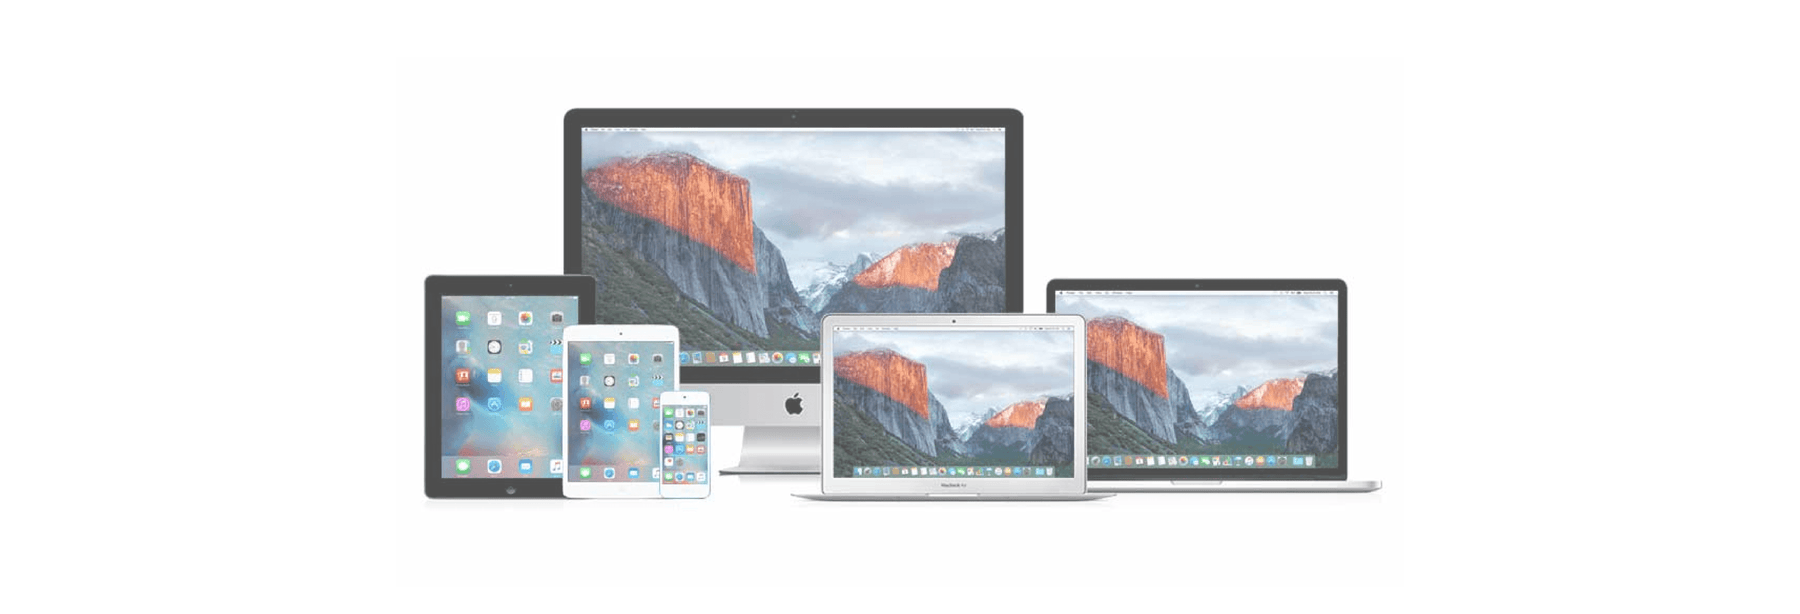 What to Look For When Buying Refurbished Apple Products